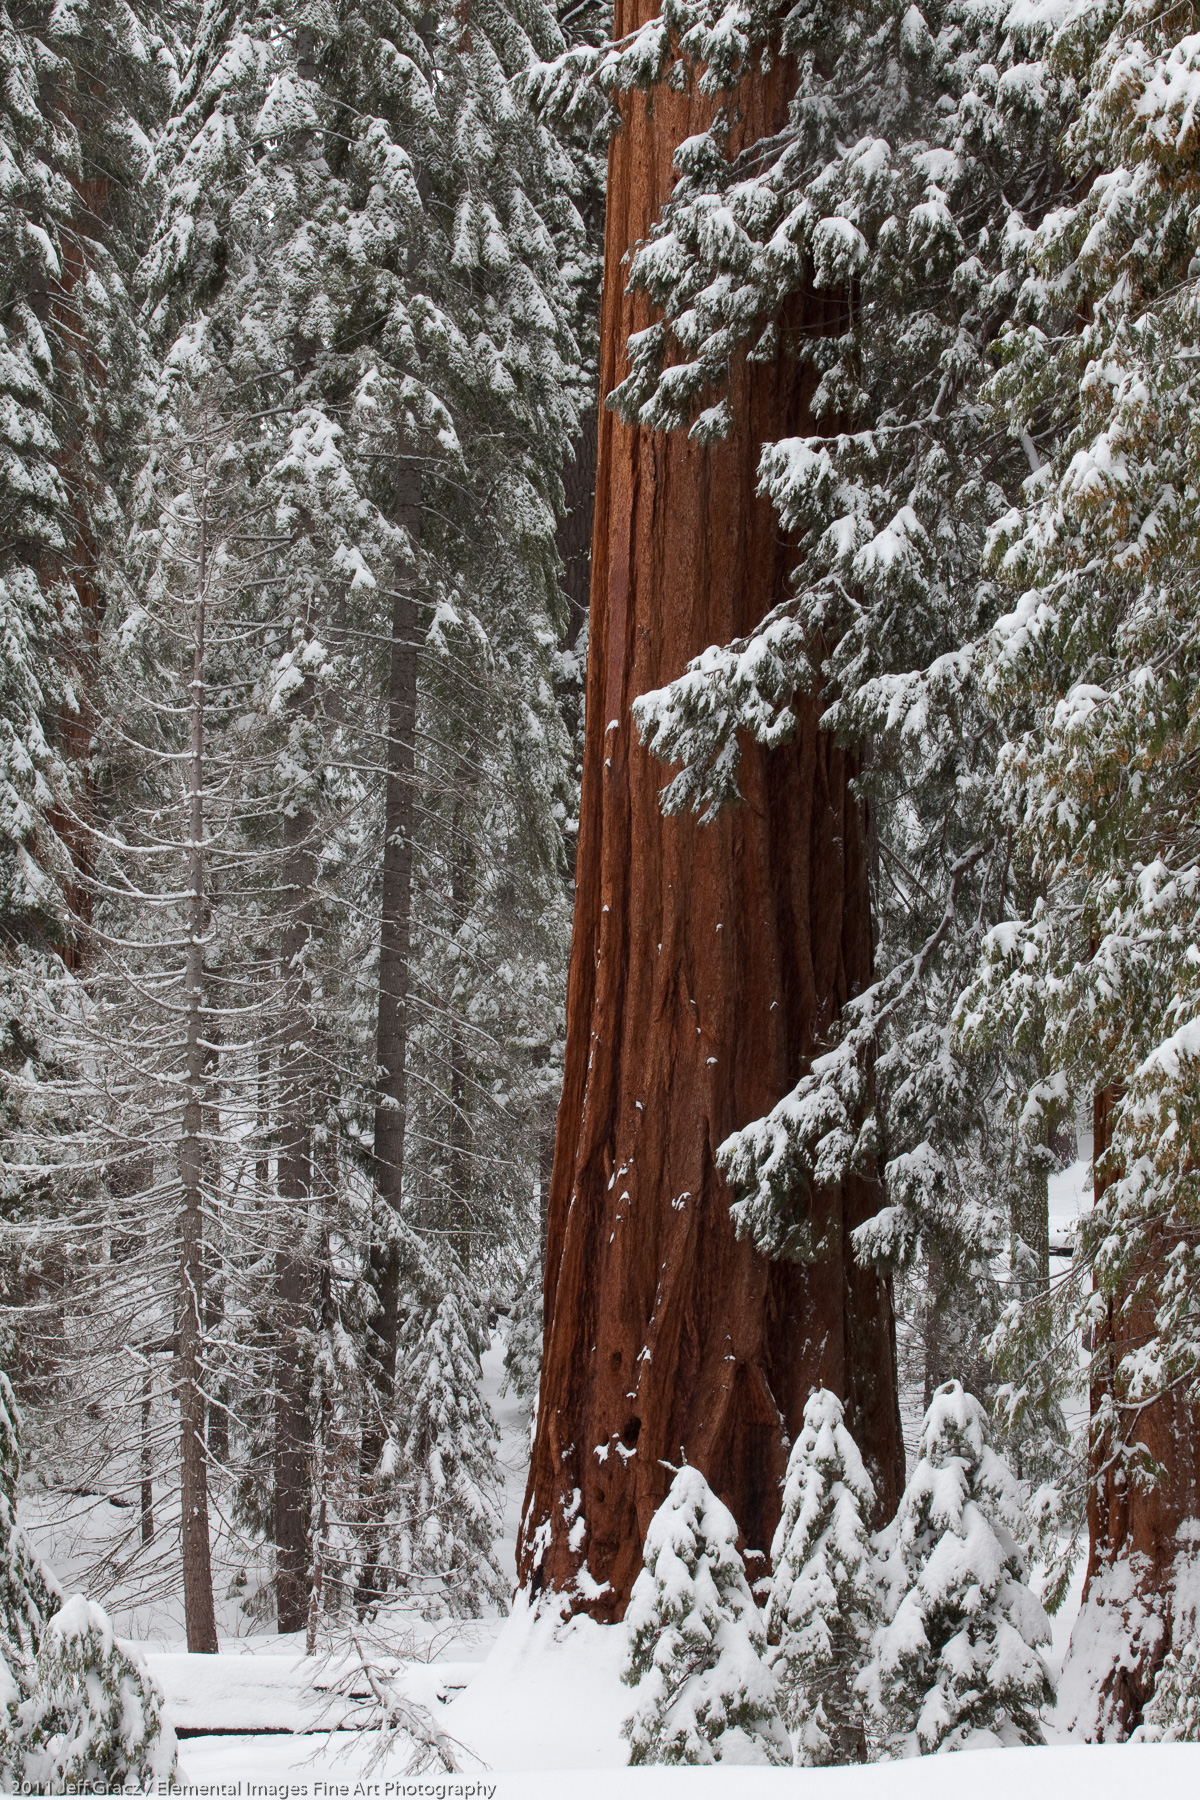 Sequoia Forest in Winter | Yosemite National Park | CA | USA - © 2011 Jeff Gracz / Elemental Images Fine Art Photography - All Rights Reserved Worldwide